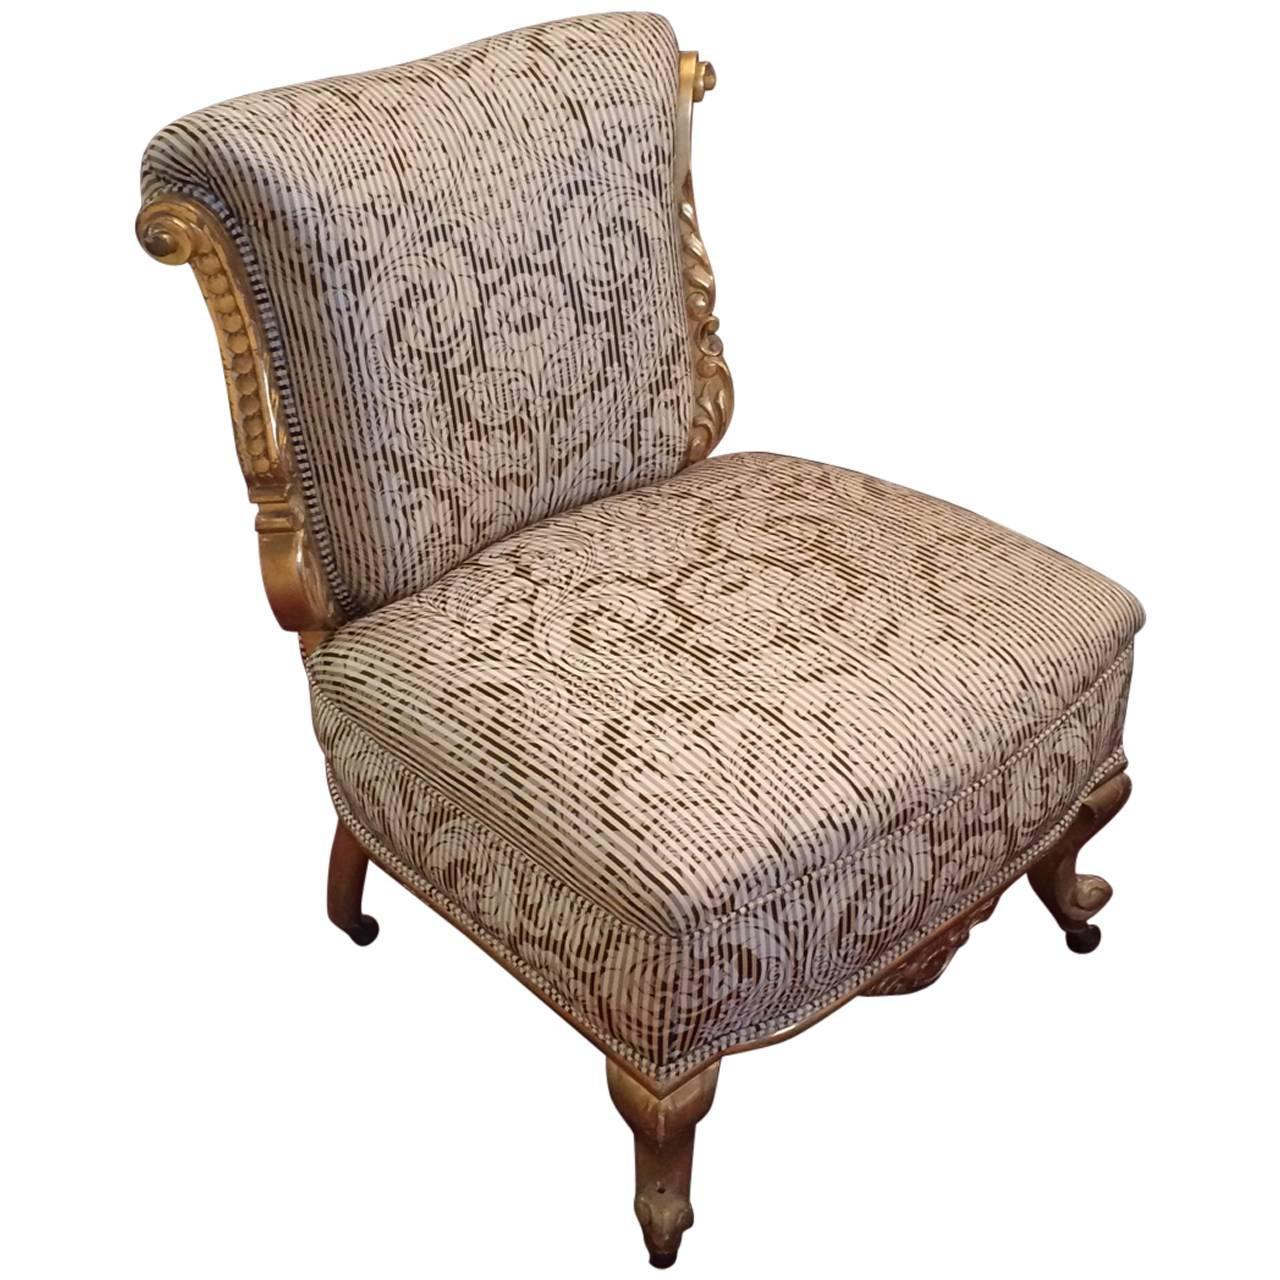 Pretty Antique Giltwood And Upholstered Slipper Chair At